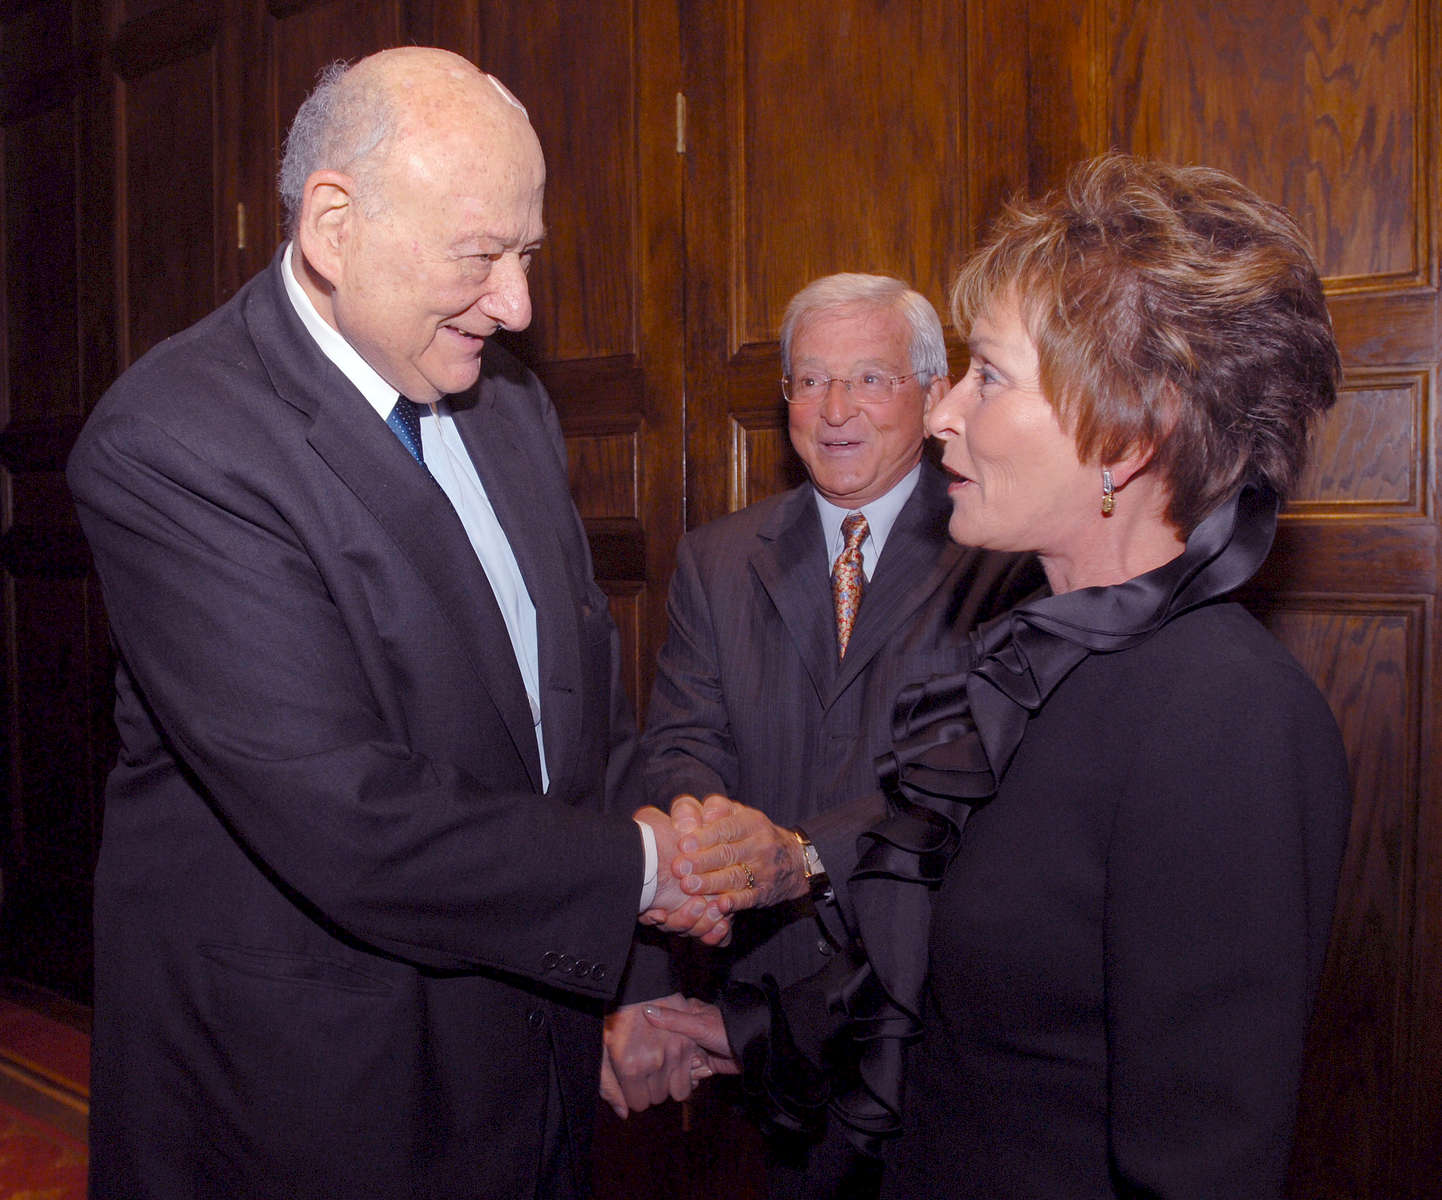 Television Judges Judy and Jerry  Sheindlin greet Mayor Koch at an event honoring Koch's appointment of judges over his tenure. Judge Judy was appointed to Family Court in 1982. Judge Jerry was appointed to Criminal Court in 1983 – September, 2008